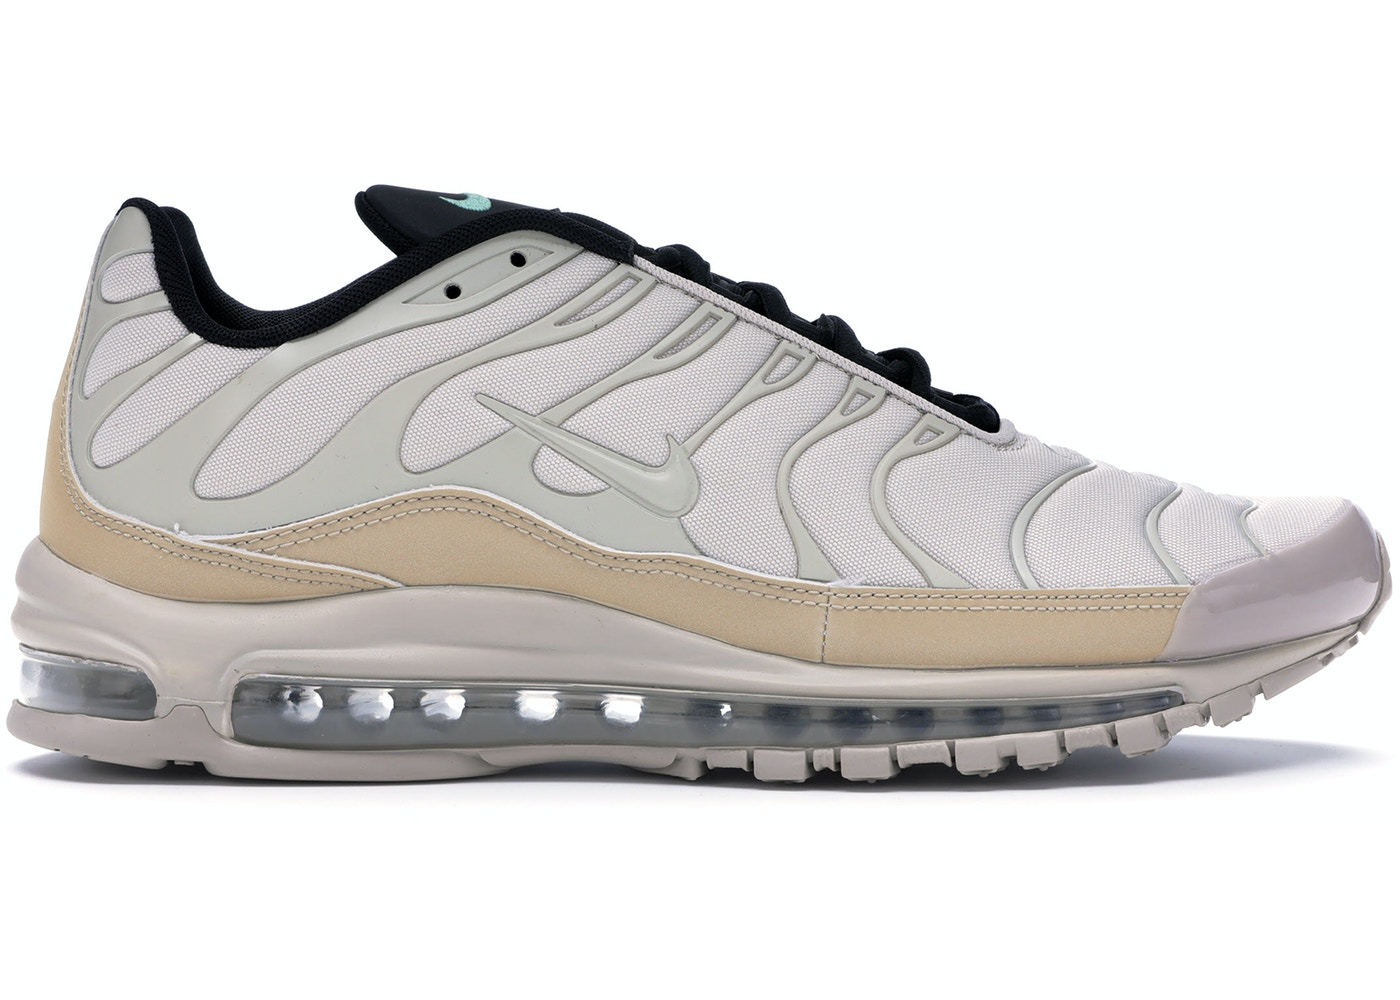 detailed look f3158 775e0 Air Max 97 Plus Light Orewood Brown